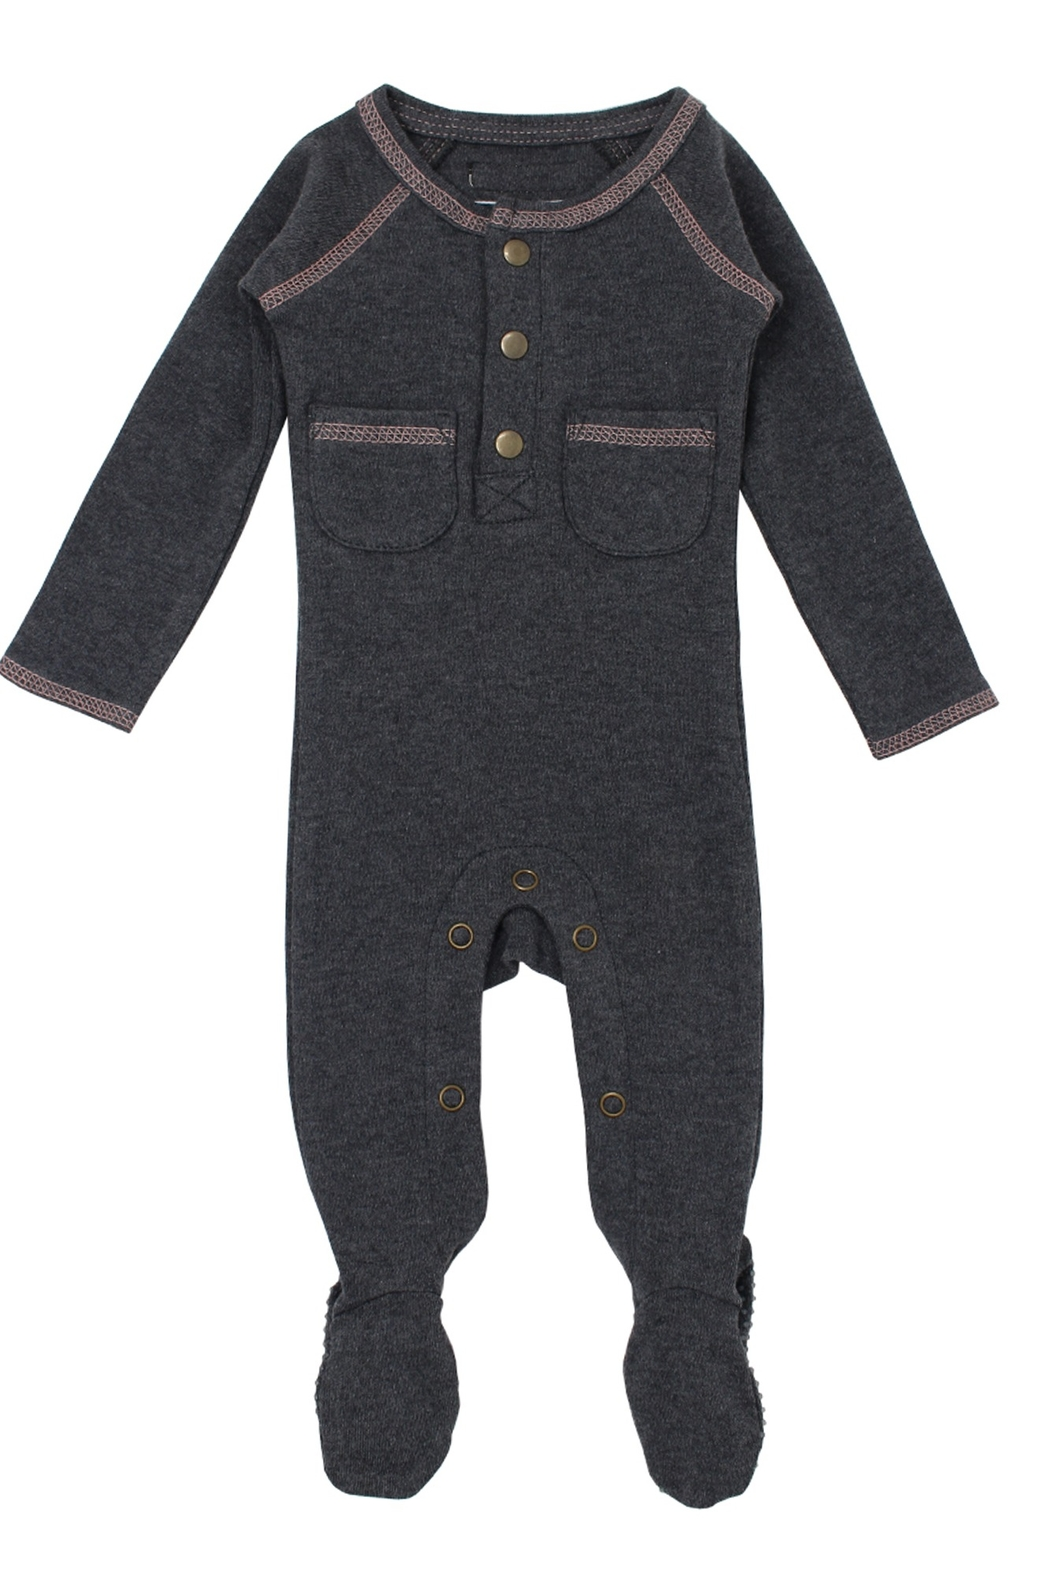 Lovedbaby L'ovedBaby Organic Pocket Footed Overall, Dark Heather/Beige, 0-3m - Front Cropped Image